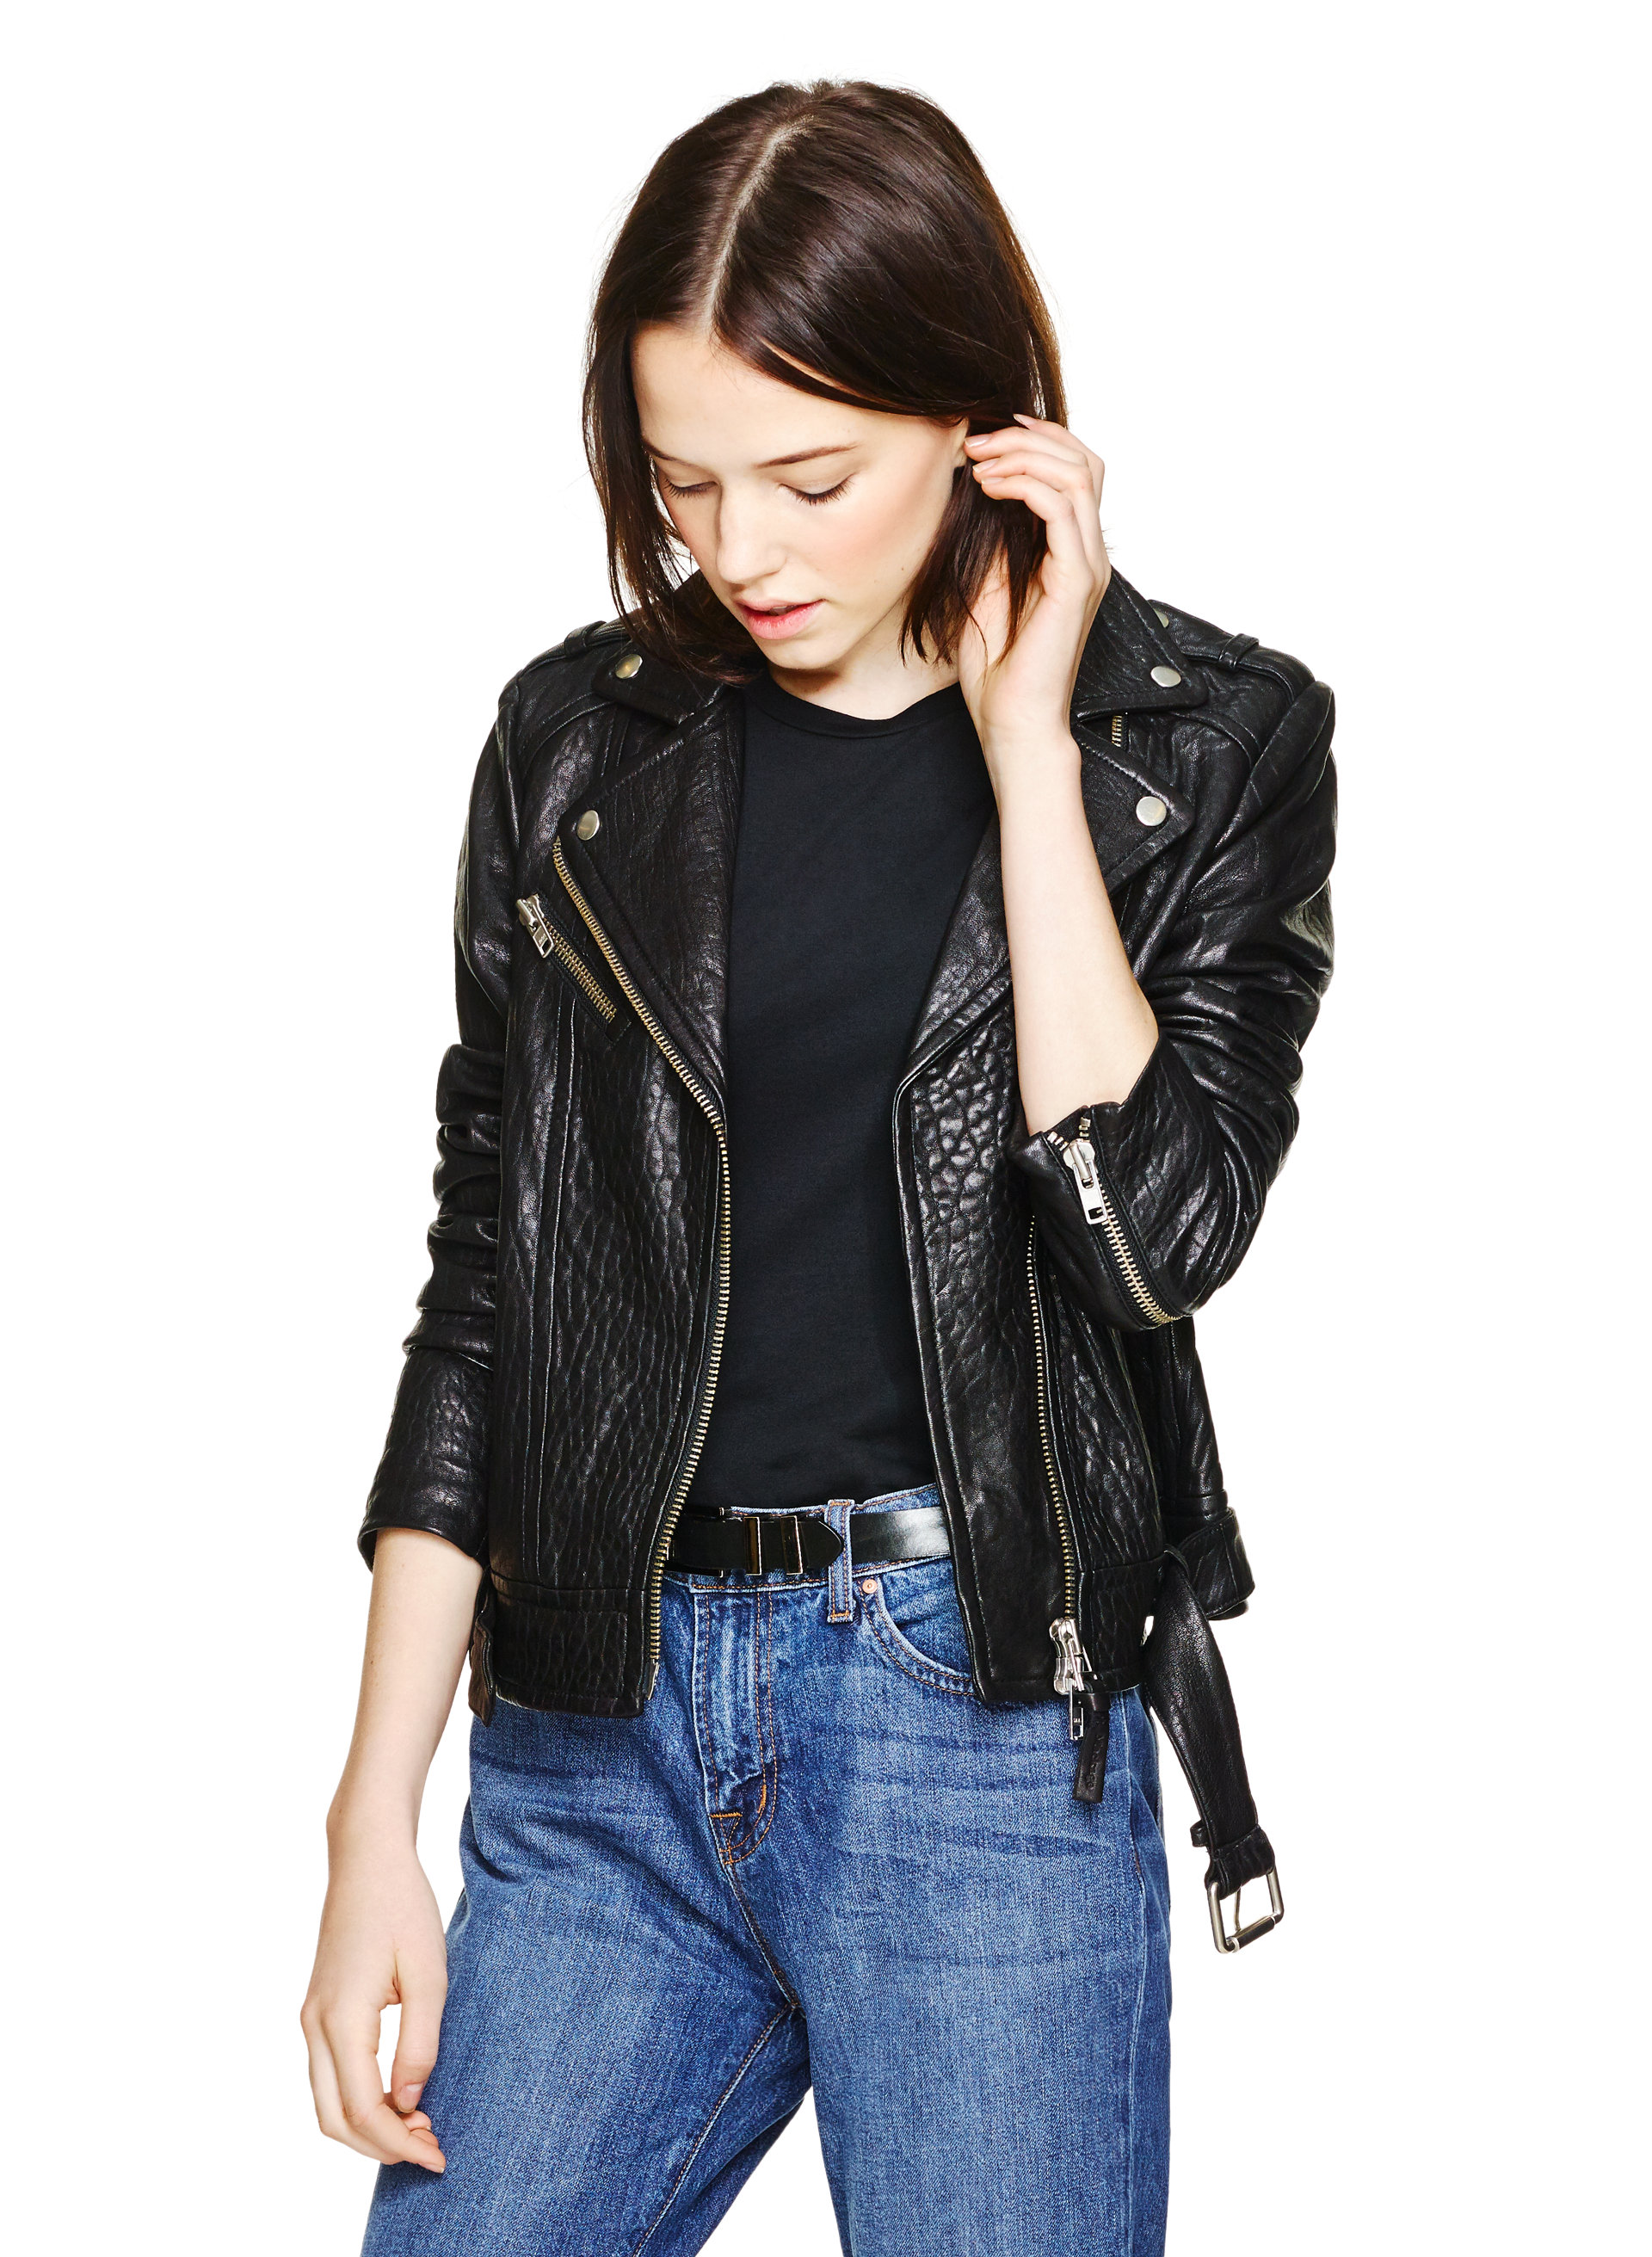 690 Aritzia Mackage Rumer Leather Jacket